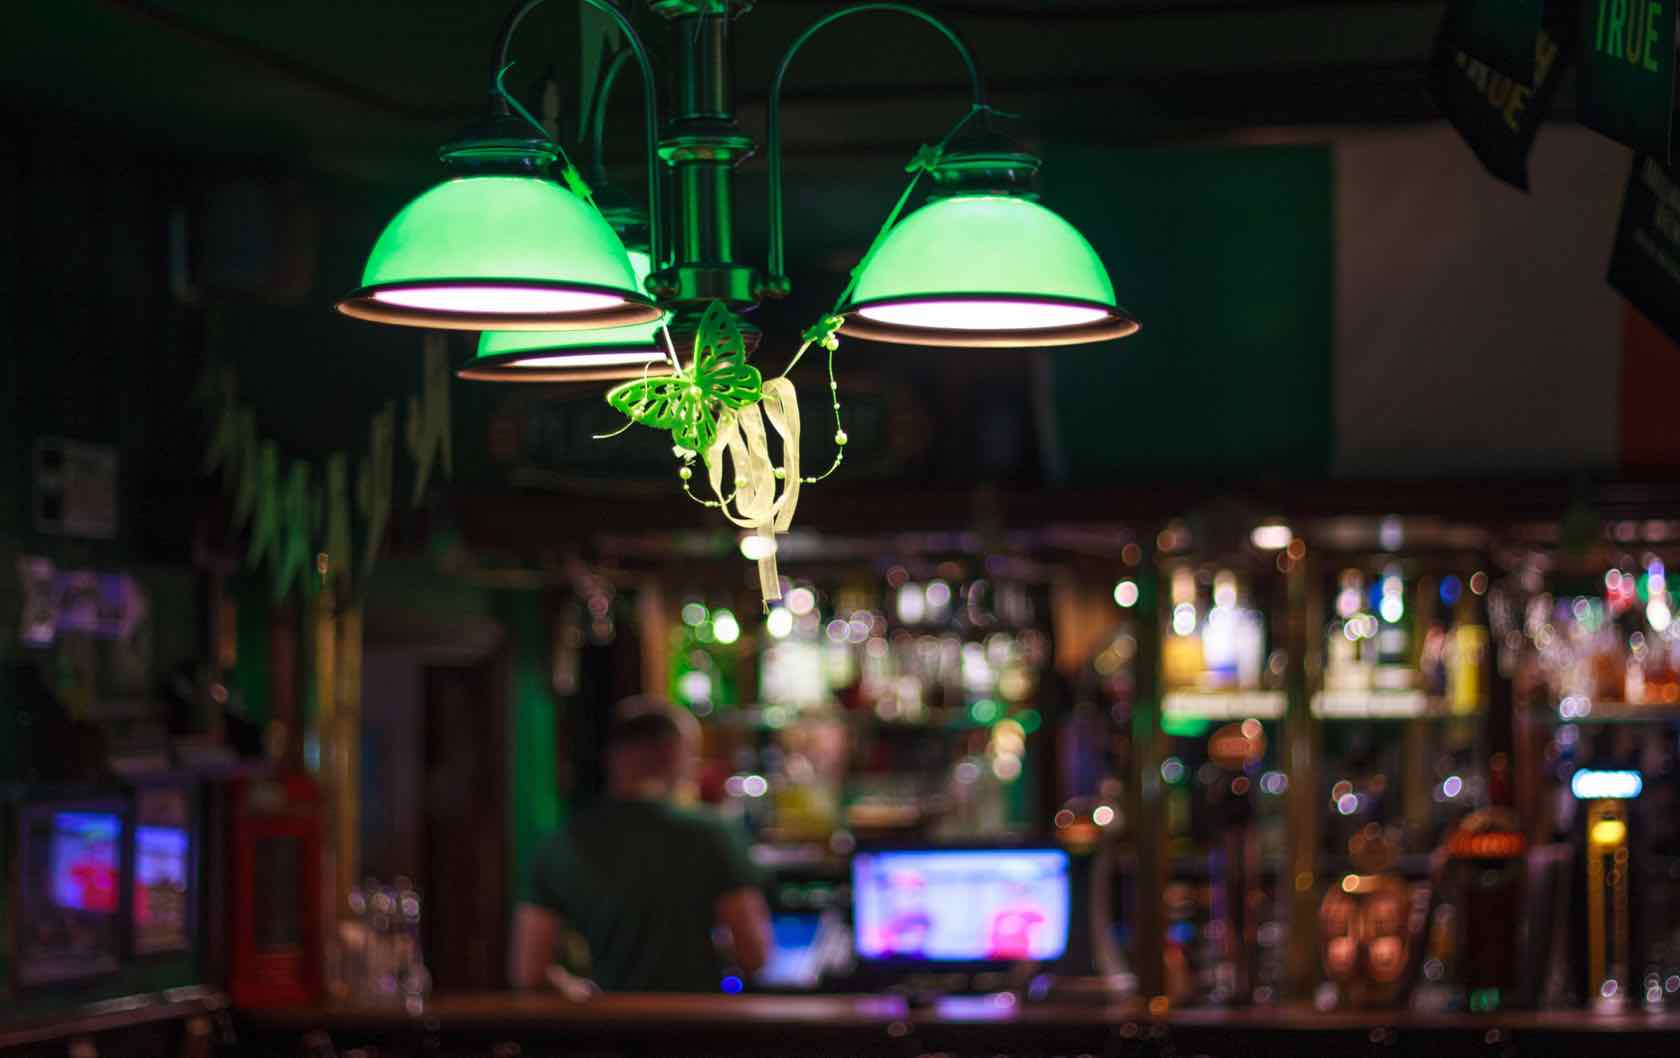 How To Celebrate St. Patrick's Day In London